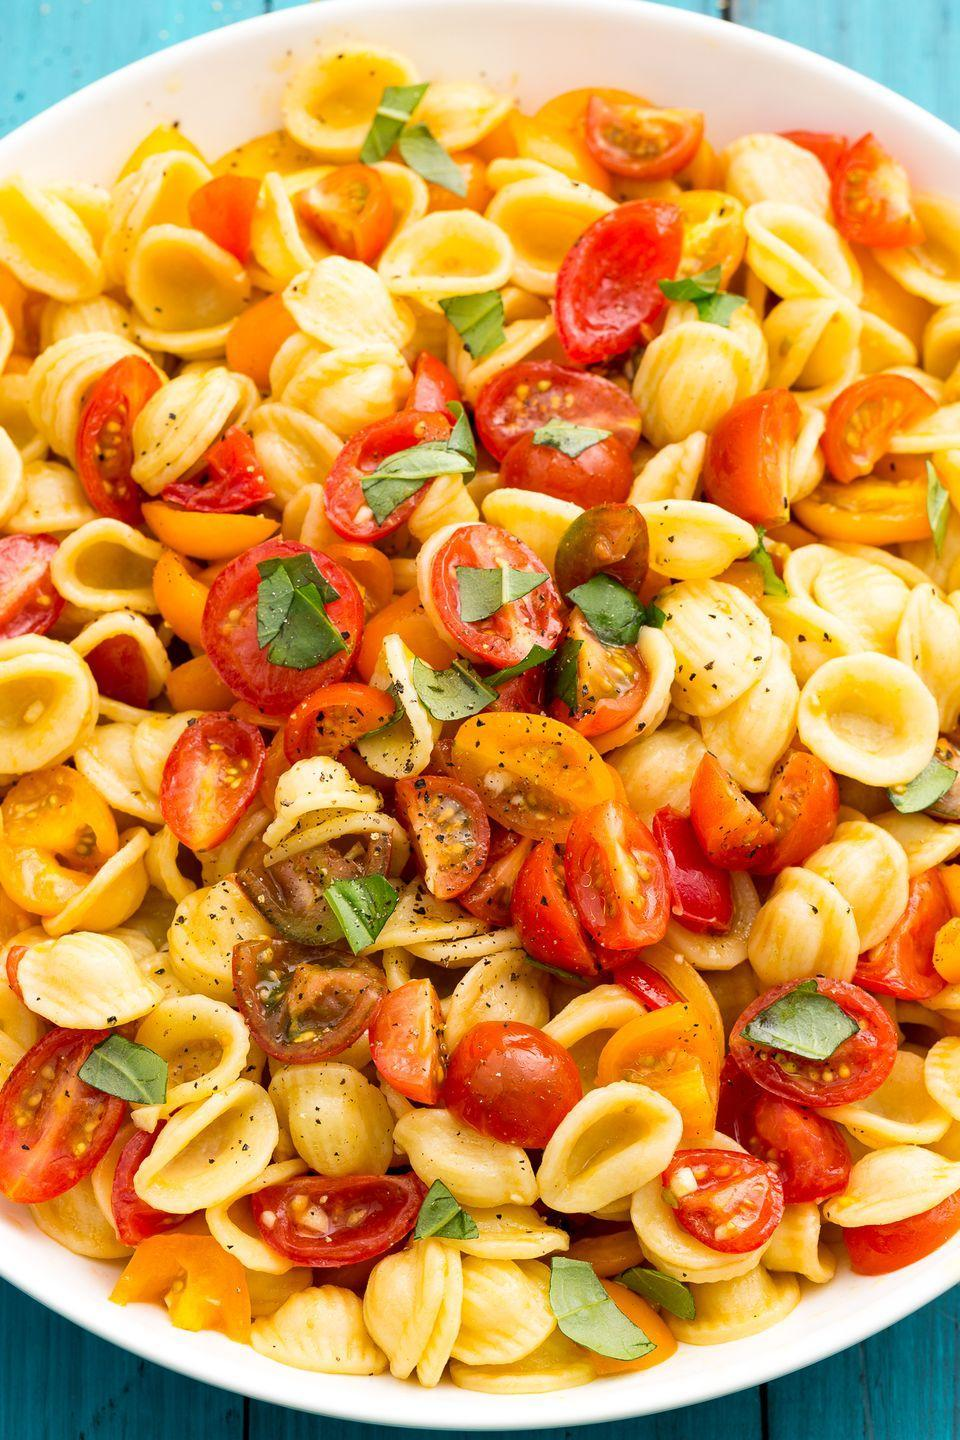 """<p>Perfect in its simplicity: Cherry tomatoes, lots of garlic, and basil. </p><p>Get the recipe from <a href=""""https://www.delish.com/cooking/recipe-ideas/recipes/a47335/bruschetta-pasta-salad-recipe/"""" rel=""""nofollow noopener"""" target=""""_blank"""" data-ylk=""""slk:Delish"""" class=""""link rapid-noclick-resp"""">Delish</a>.</p>"""